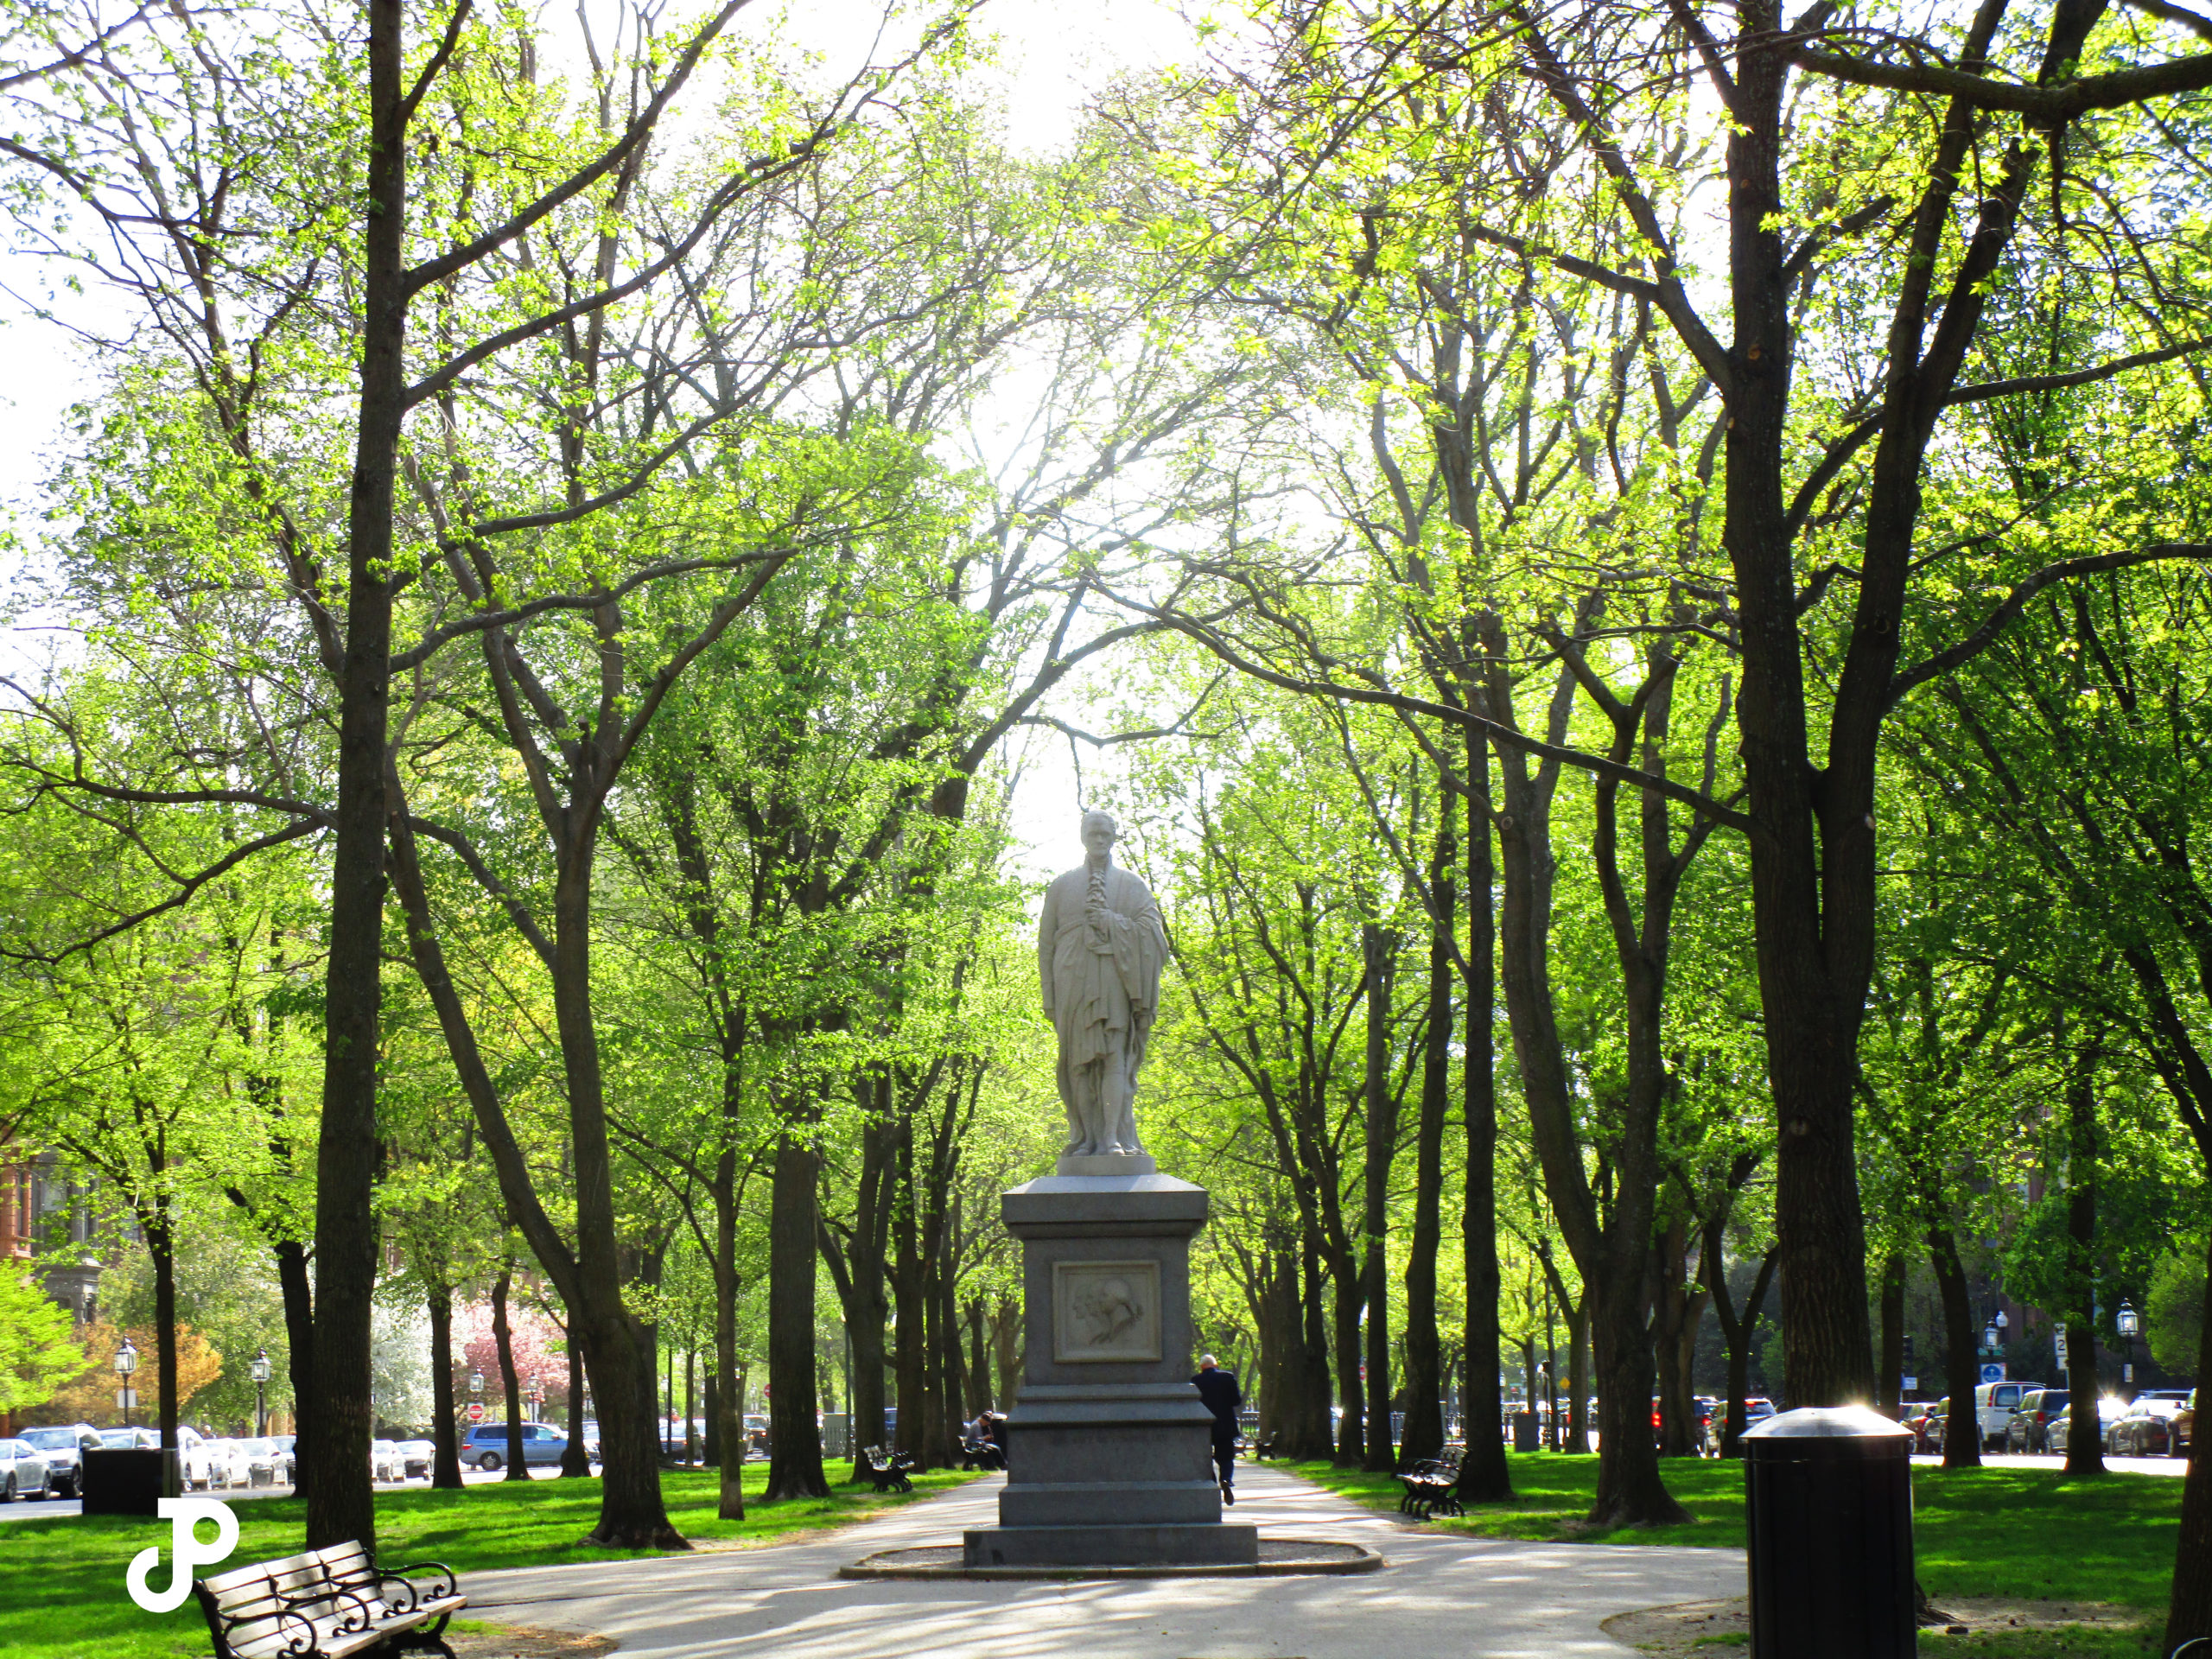 the Alexander Hamilton Statue surrounded by vibrant green trees